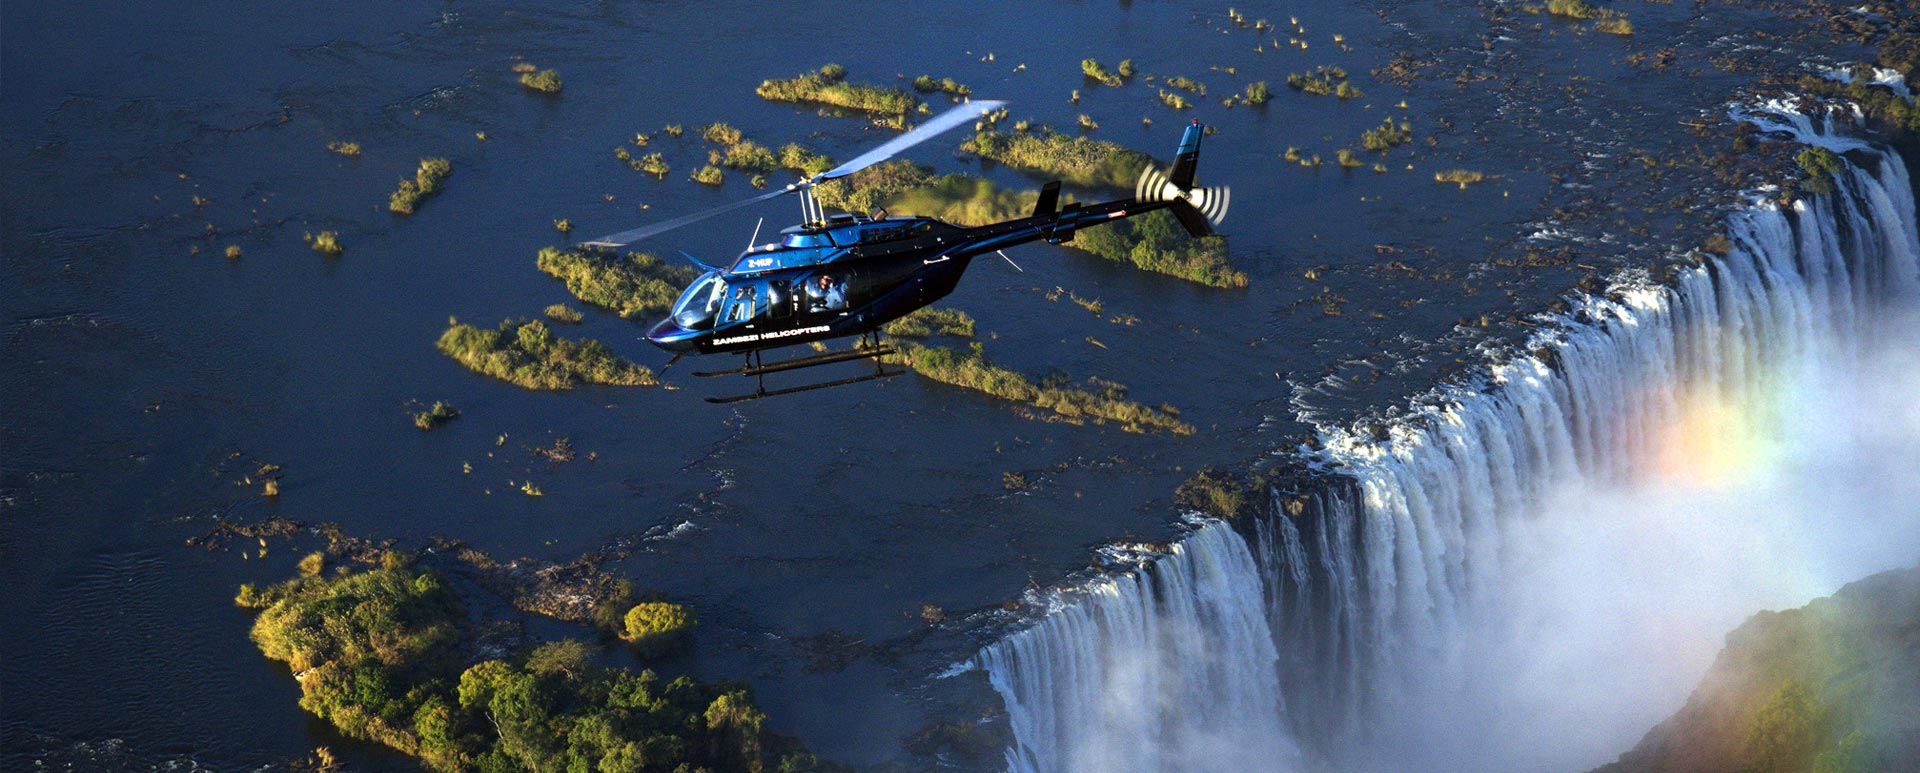 Charter Victoria Falls Helicopter Flight